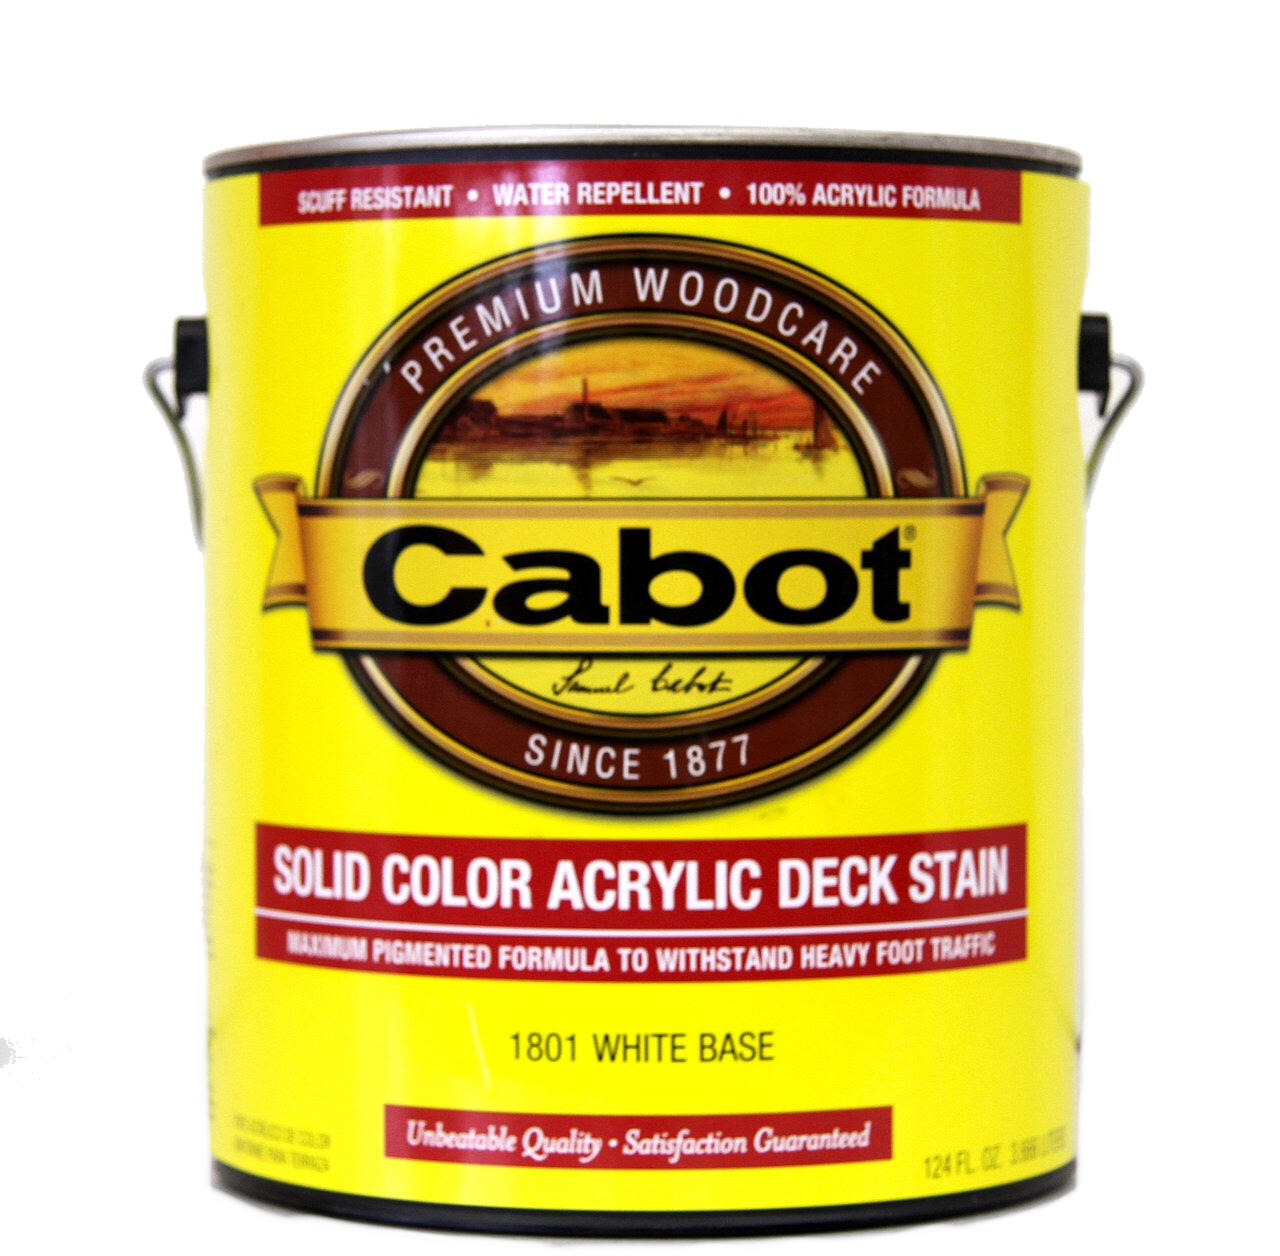 Cabot solid stain